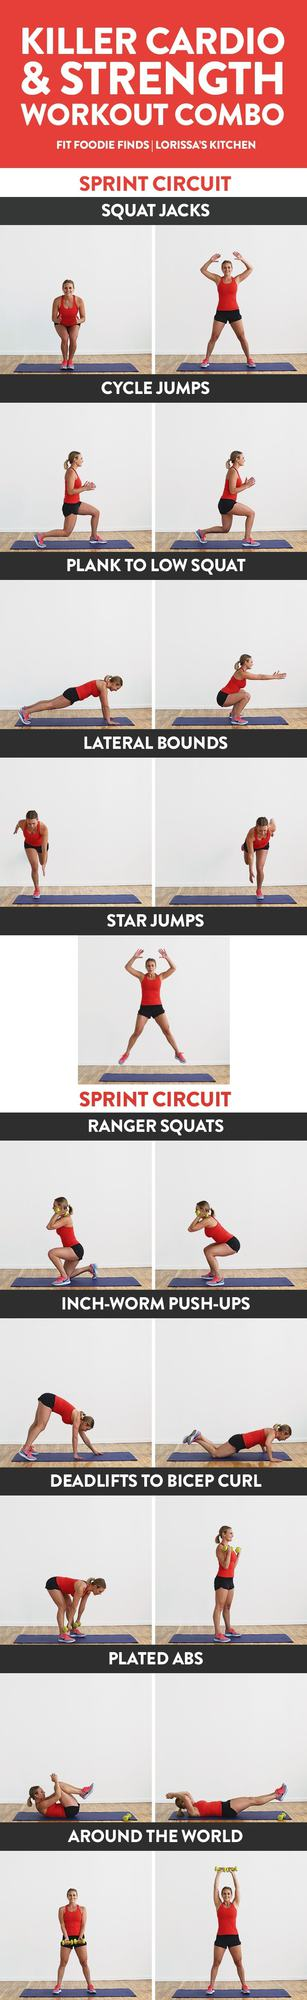 Boost your mood and your cardiovascular strength with these at-home cardio workouts. They are challenging, fun and they call for minimal equipment.